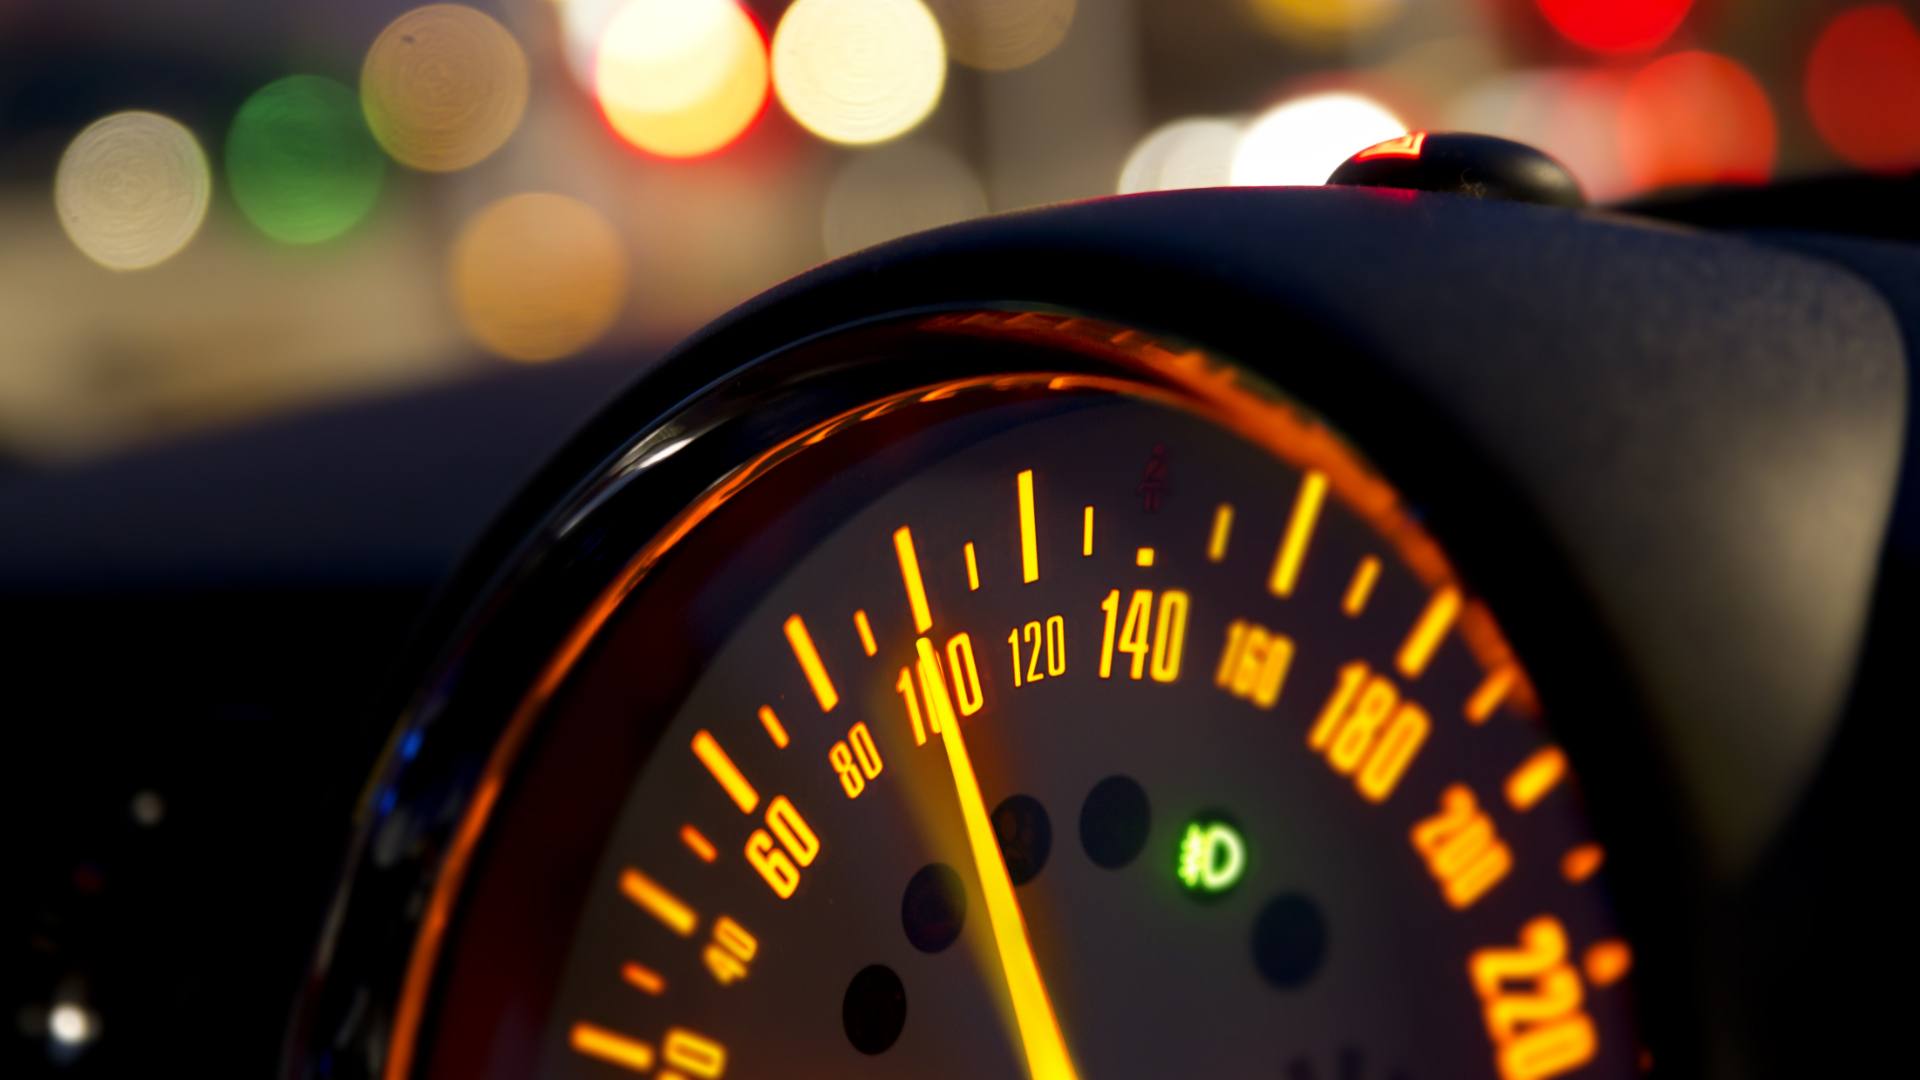 Mandatory speed limiters